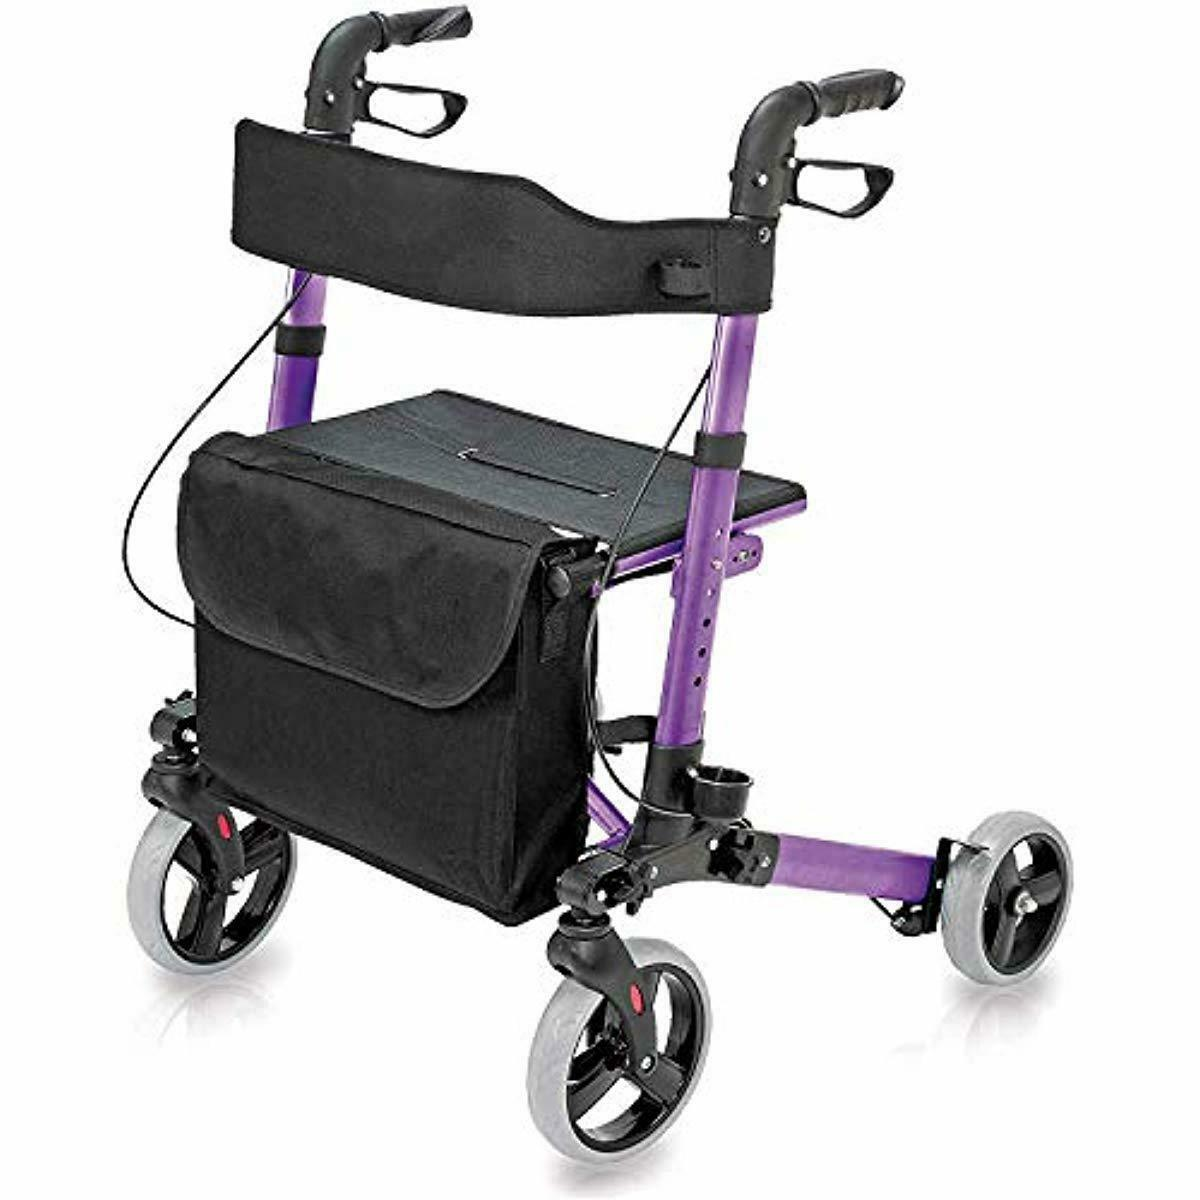 Folding Rollator Walker with Seat and Backrest Lightweight A